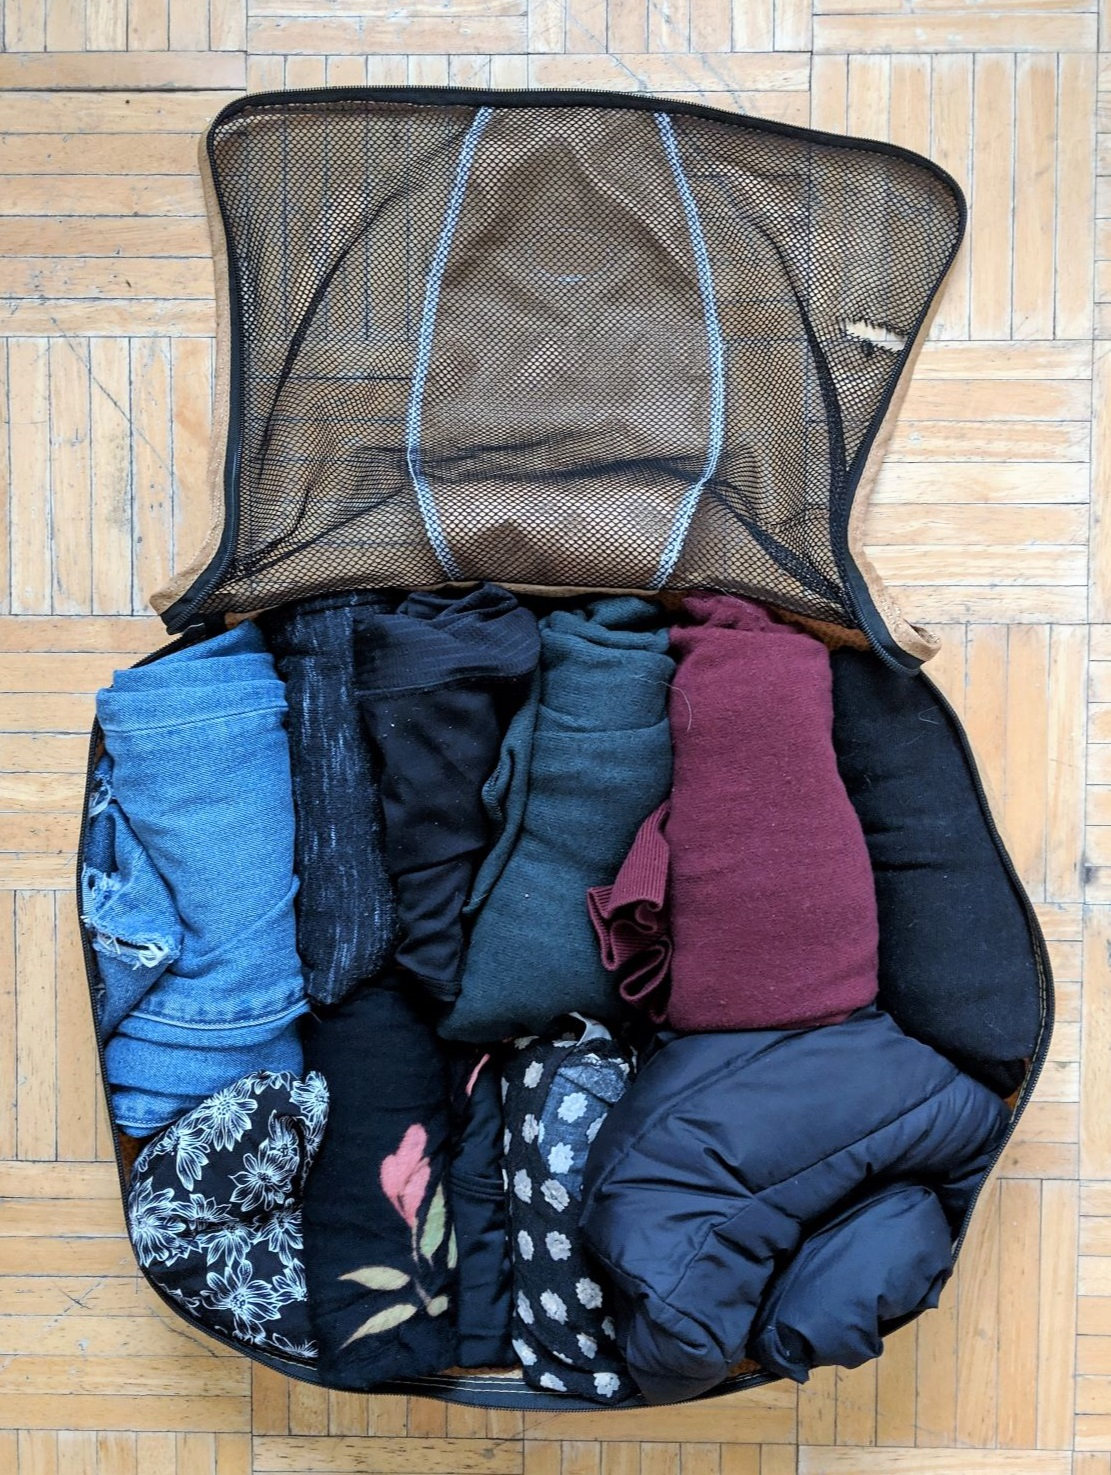 Packing cubes. - Packing cubes are my favourite packing hack! I bought my current set off Amazon for less than 25 CAD. In this cube I have packed all my clothing for the trip: 1 pair of jeans, 1 skirt, 1 sweater, 1 light down jacket, 2 t-shirts and 3 long sleeve.